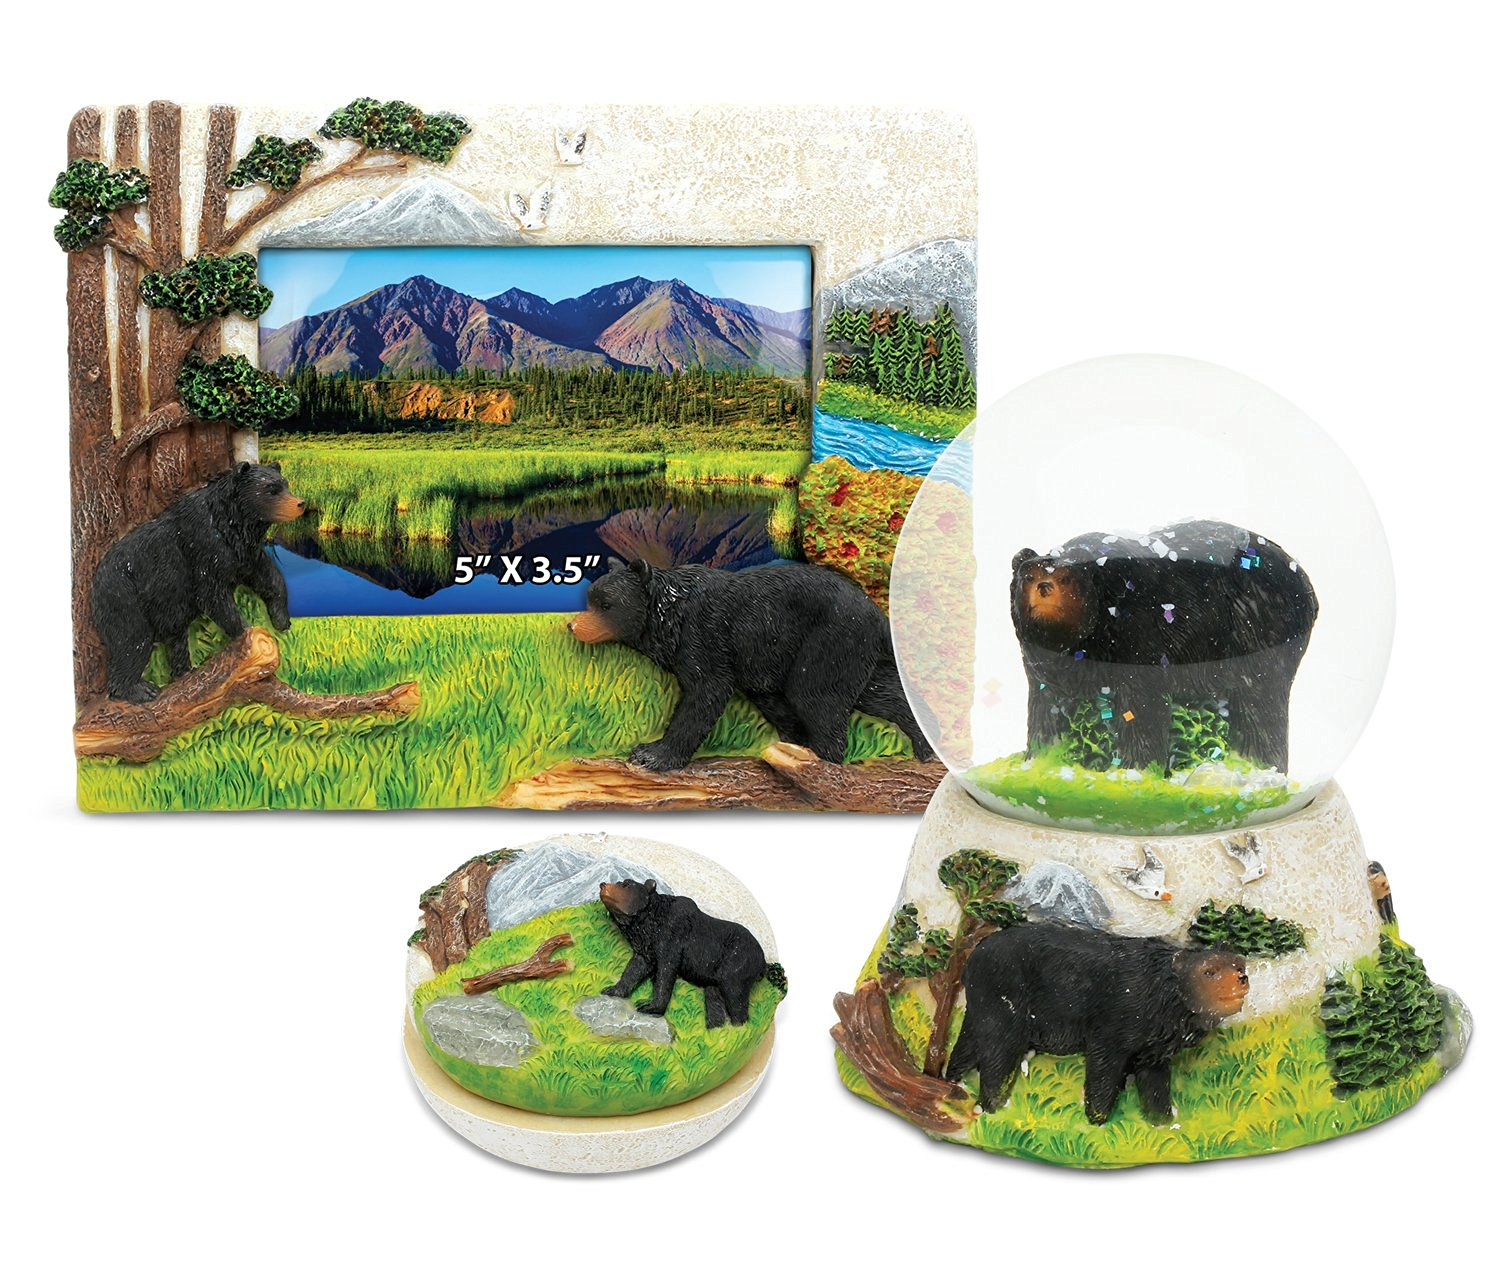 Puzzled Black Bear Resin Stone Finish Collection including Picture/Photo Frame, Jewelry Box , and Snow Globe - Picture Size 5 by 3 - Unique Elegant Gift and Souvenir